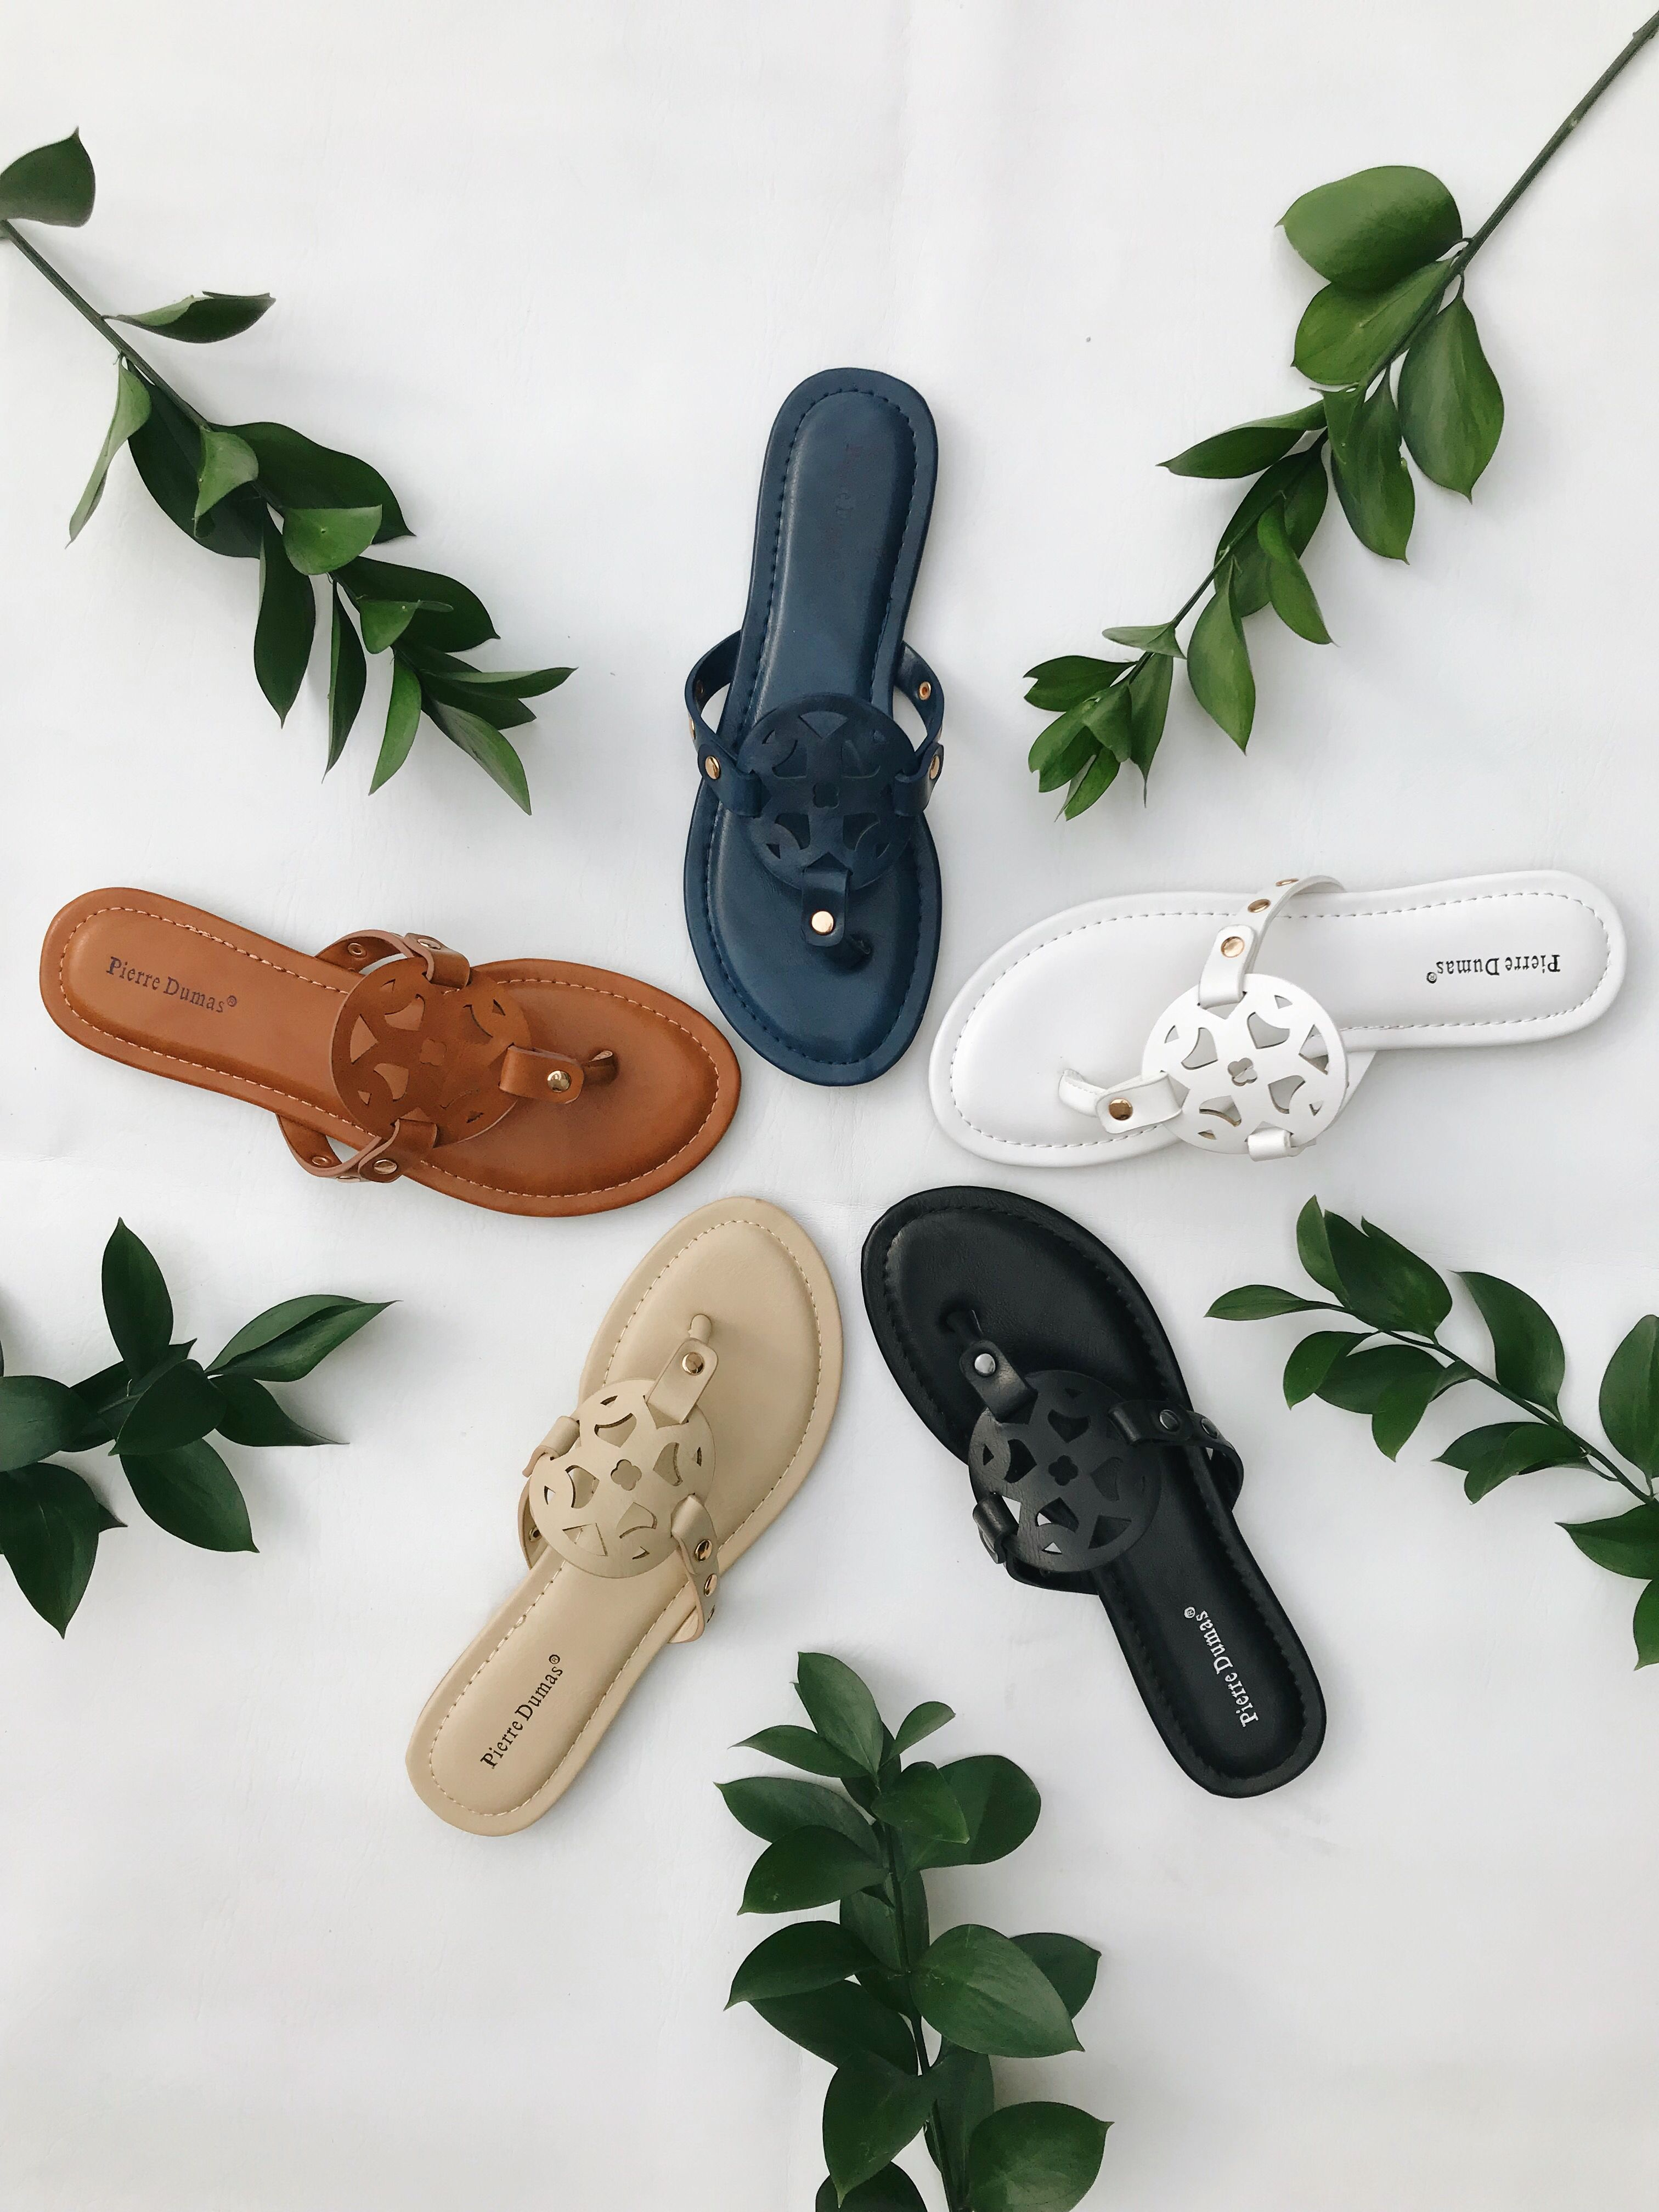 ca2eb710da9 Slip into spring with this elegantly crafted sandal.  sandals  flipflop   toryburch  toryburchsandals  spring  springshoes  summer  womensfashion   outfit ...